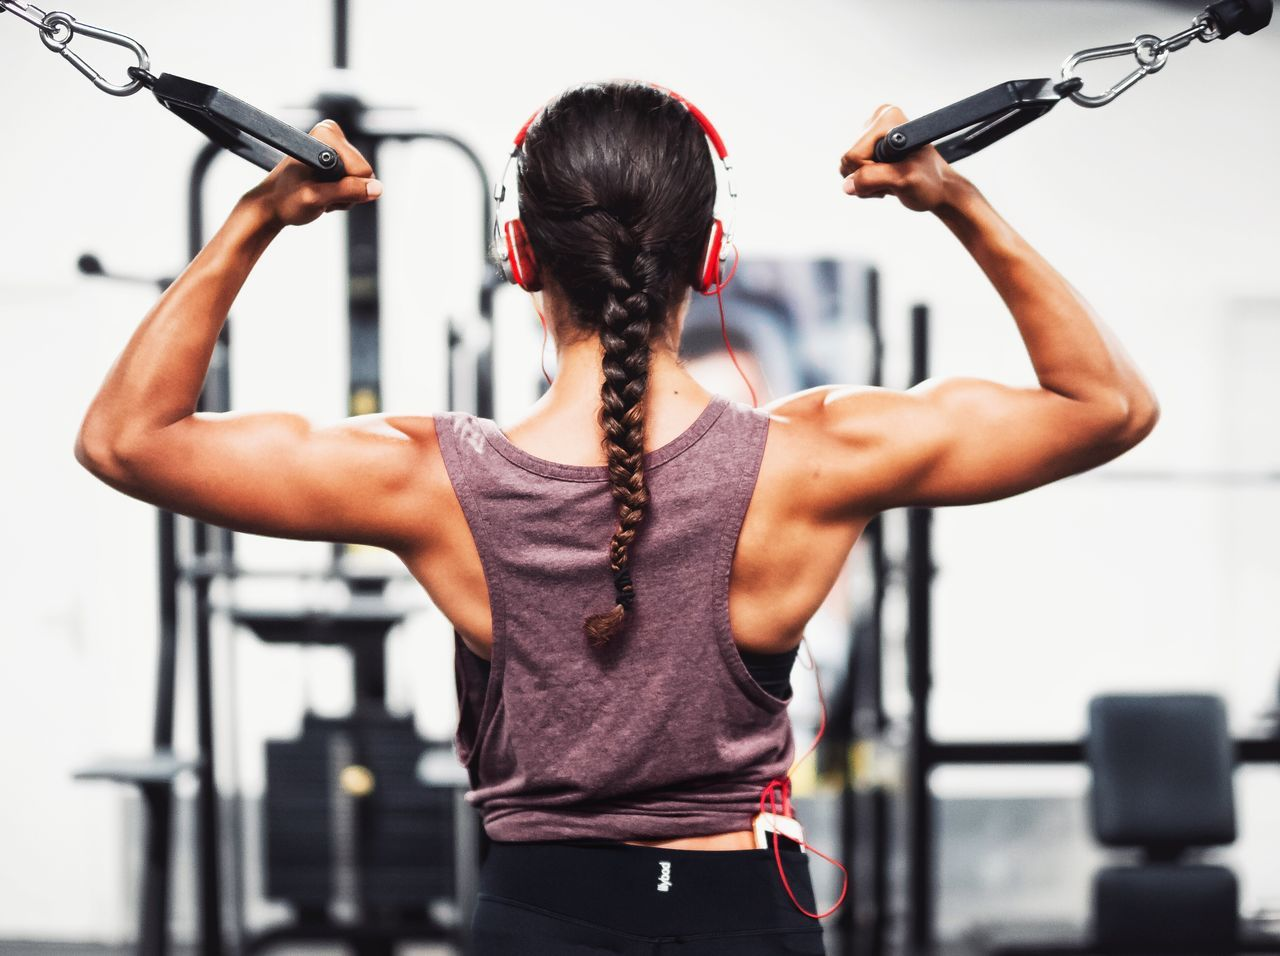 Exercising gym healthy lifestyle strength health club lifestyles muscular build sports training sport Rear view exercise equipment Athlete human muscle Picking Up human body part strength training sports clothing physical activity activity wellbeing Woman fitgirl Curl biceps strong woman